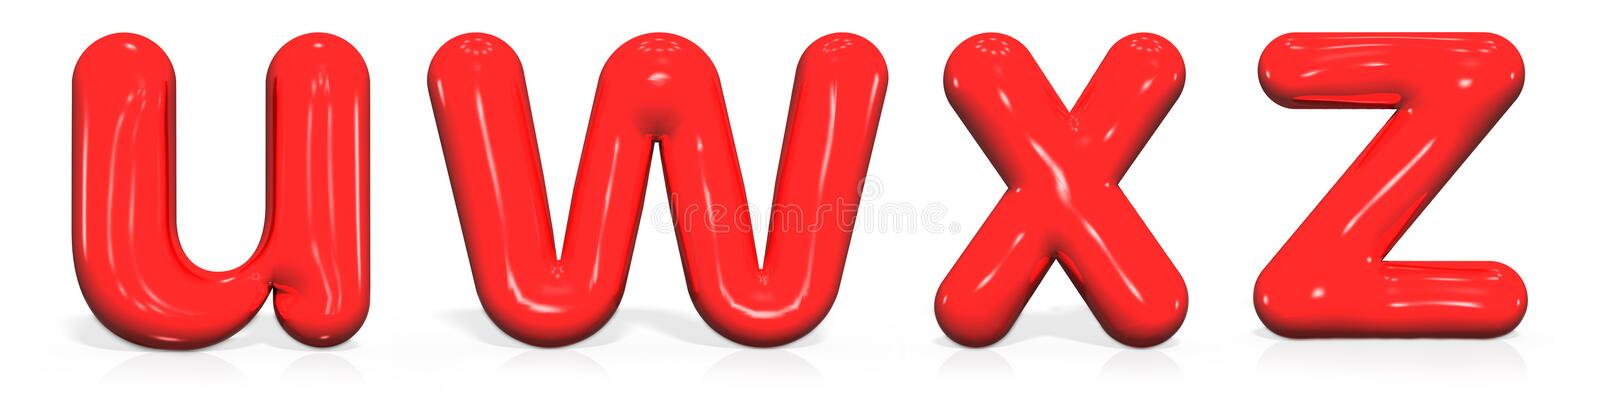 Glossy red paint letter U, W, X, Z lowercase of bubble isolated on white background, 3d rendering illustration stock illustration